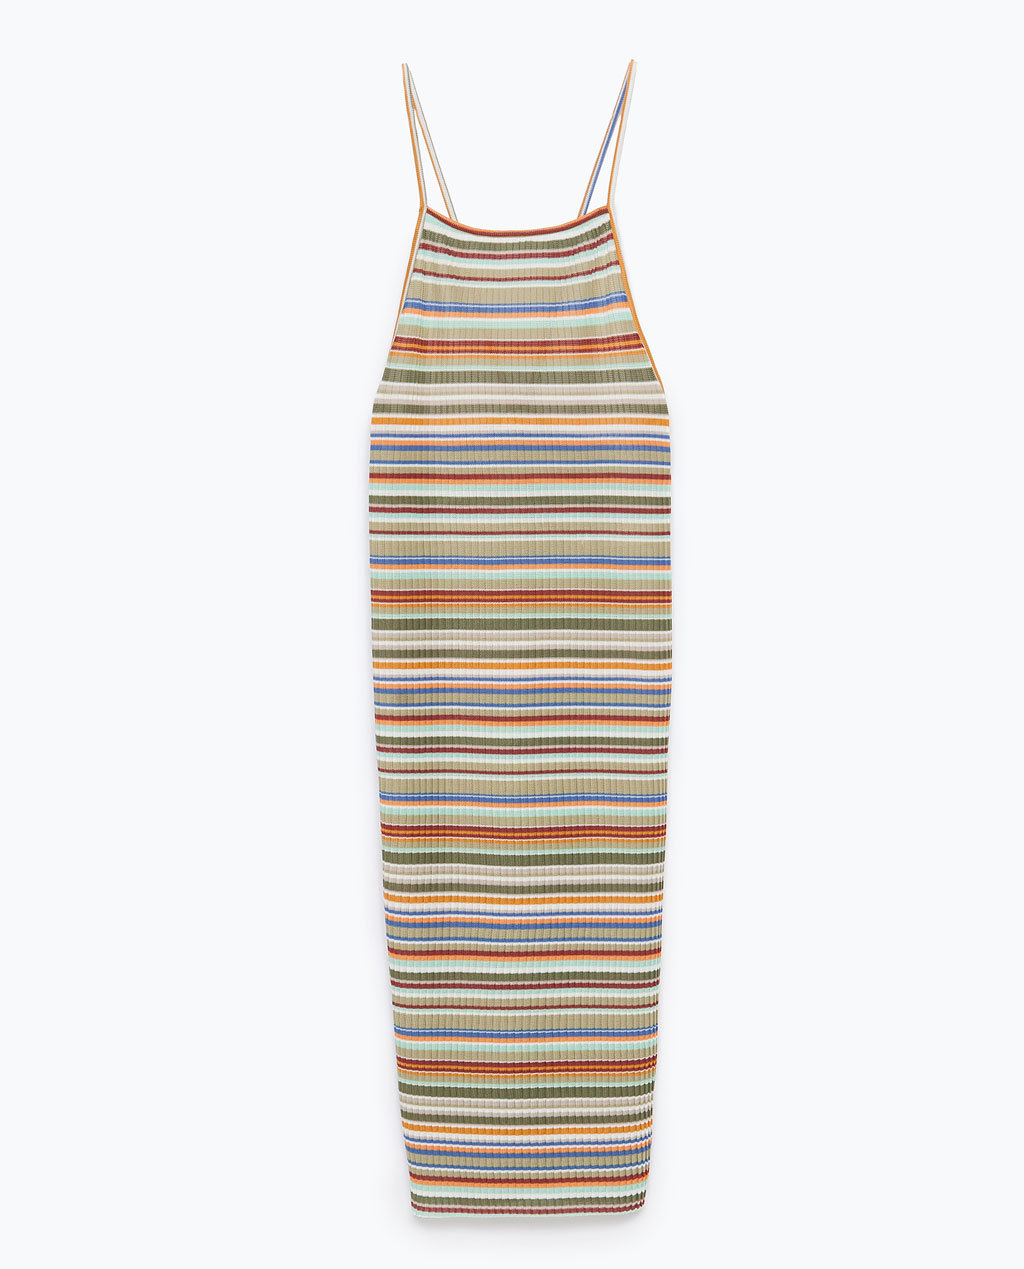 Striped Dress With Pleats - length: calf length; sleeve style: spaghetti straps; pattern: horizontal stripes; back detail: back revealing; secondary colour: diva blue; predominant colour: khaki; occasions: casual; fit: body skimming; style: slip dress; fibres: polyester/polyamide - 100%; sleeve length: sleeveless; texture group: jersey - clingy; neckline: low square neck; pattern type: fabric; pattern size: big & busy; season: s/s 2015; multicoloured: multicoloured; wardrobe: highlight